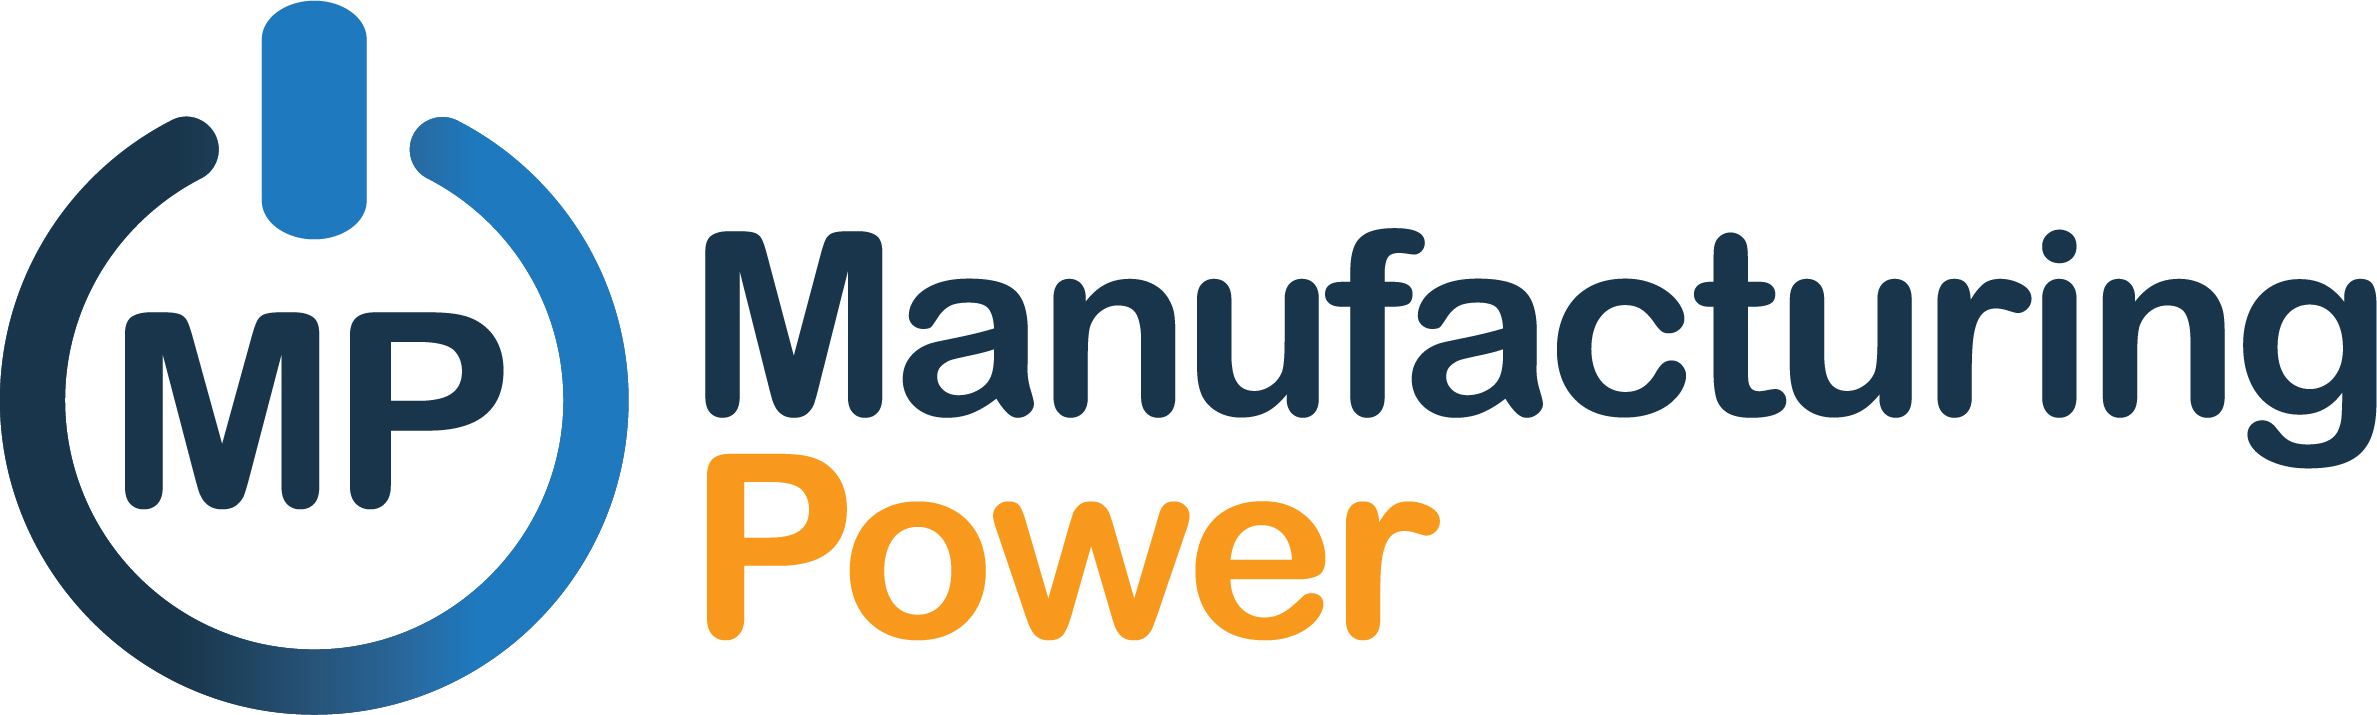 New ManufacturingPower Video Demonstrates Competitive Pricing Technology for Small and Mid-Sized Manufacturers